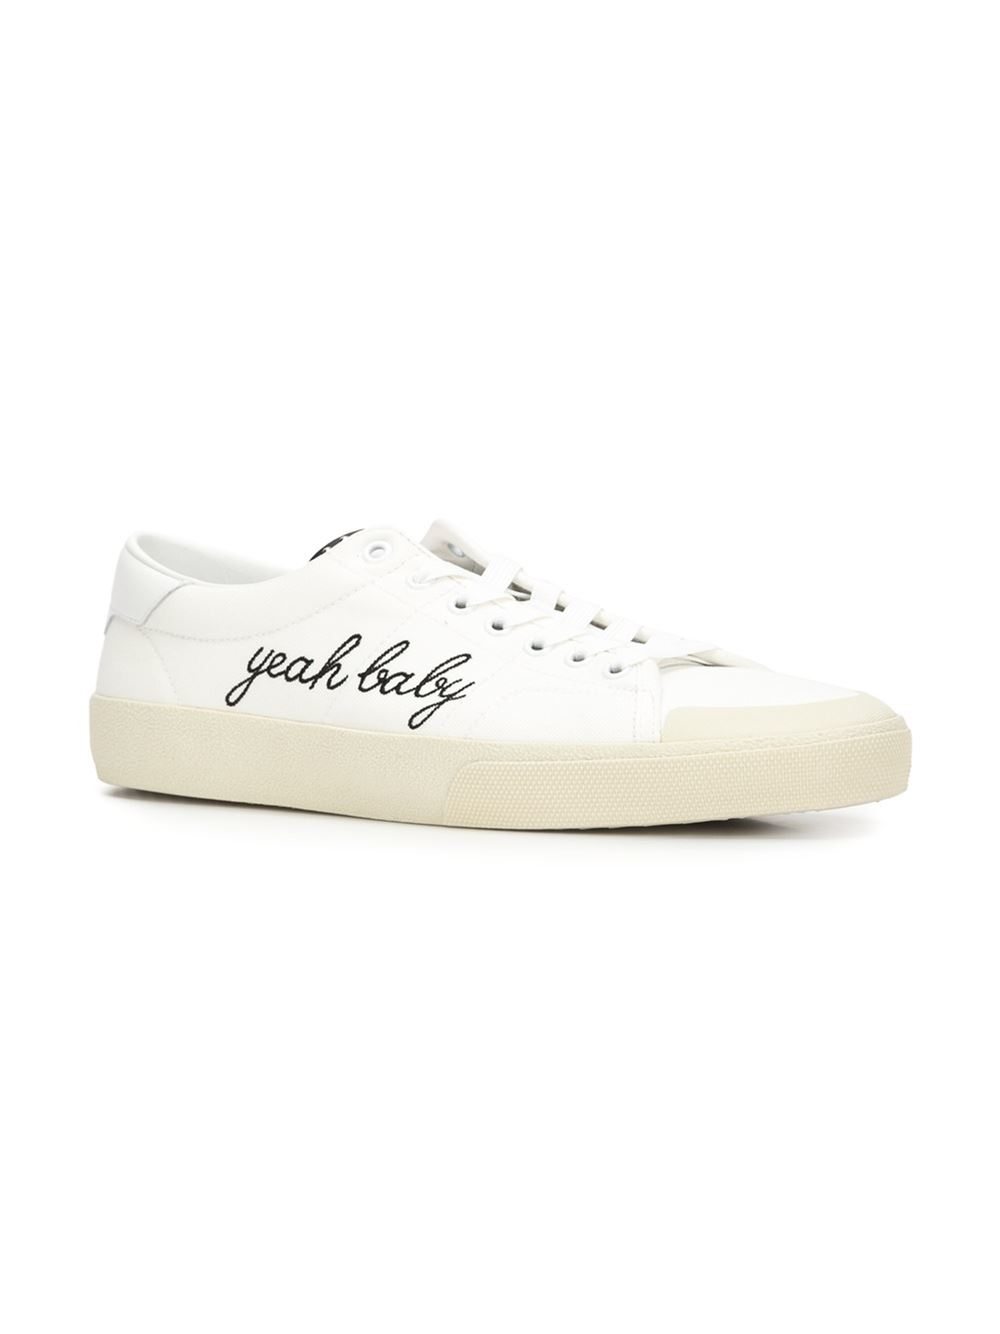 saint laurent yeah baby sneakers in white for men lyst. Black Bedroom Furniture Sets. Home Design Ideas